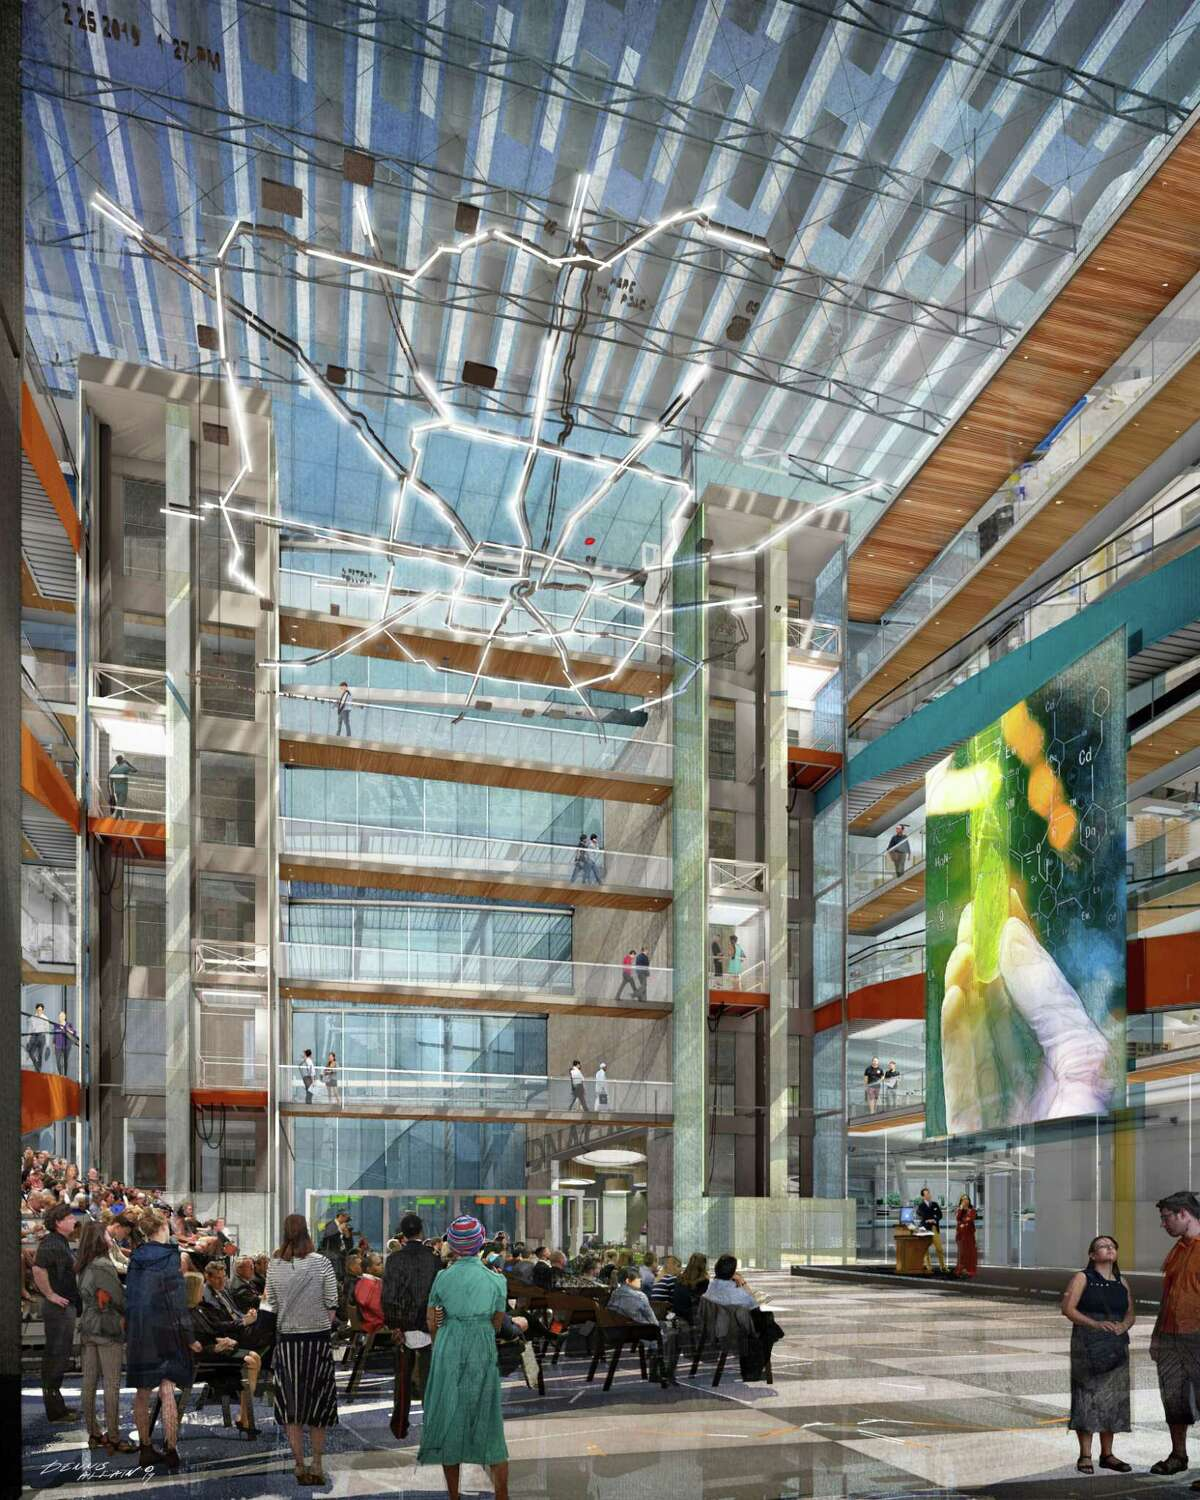 Elkus Manfredi Architects, Transwestern and Vaughn Construction will design, develop and build the proposed TMC3 collaborative biomedical research hub.